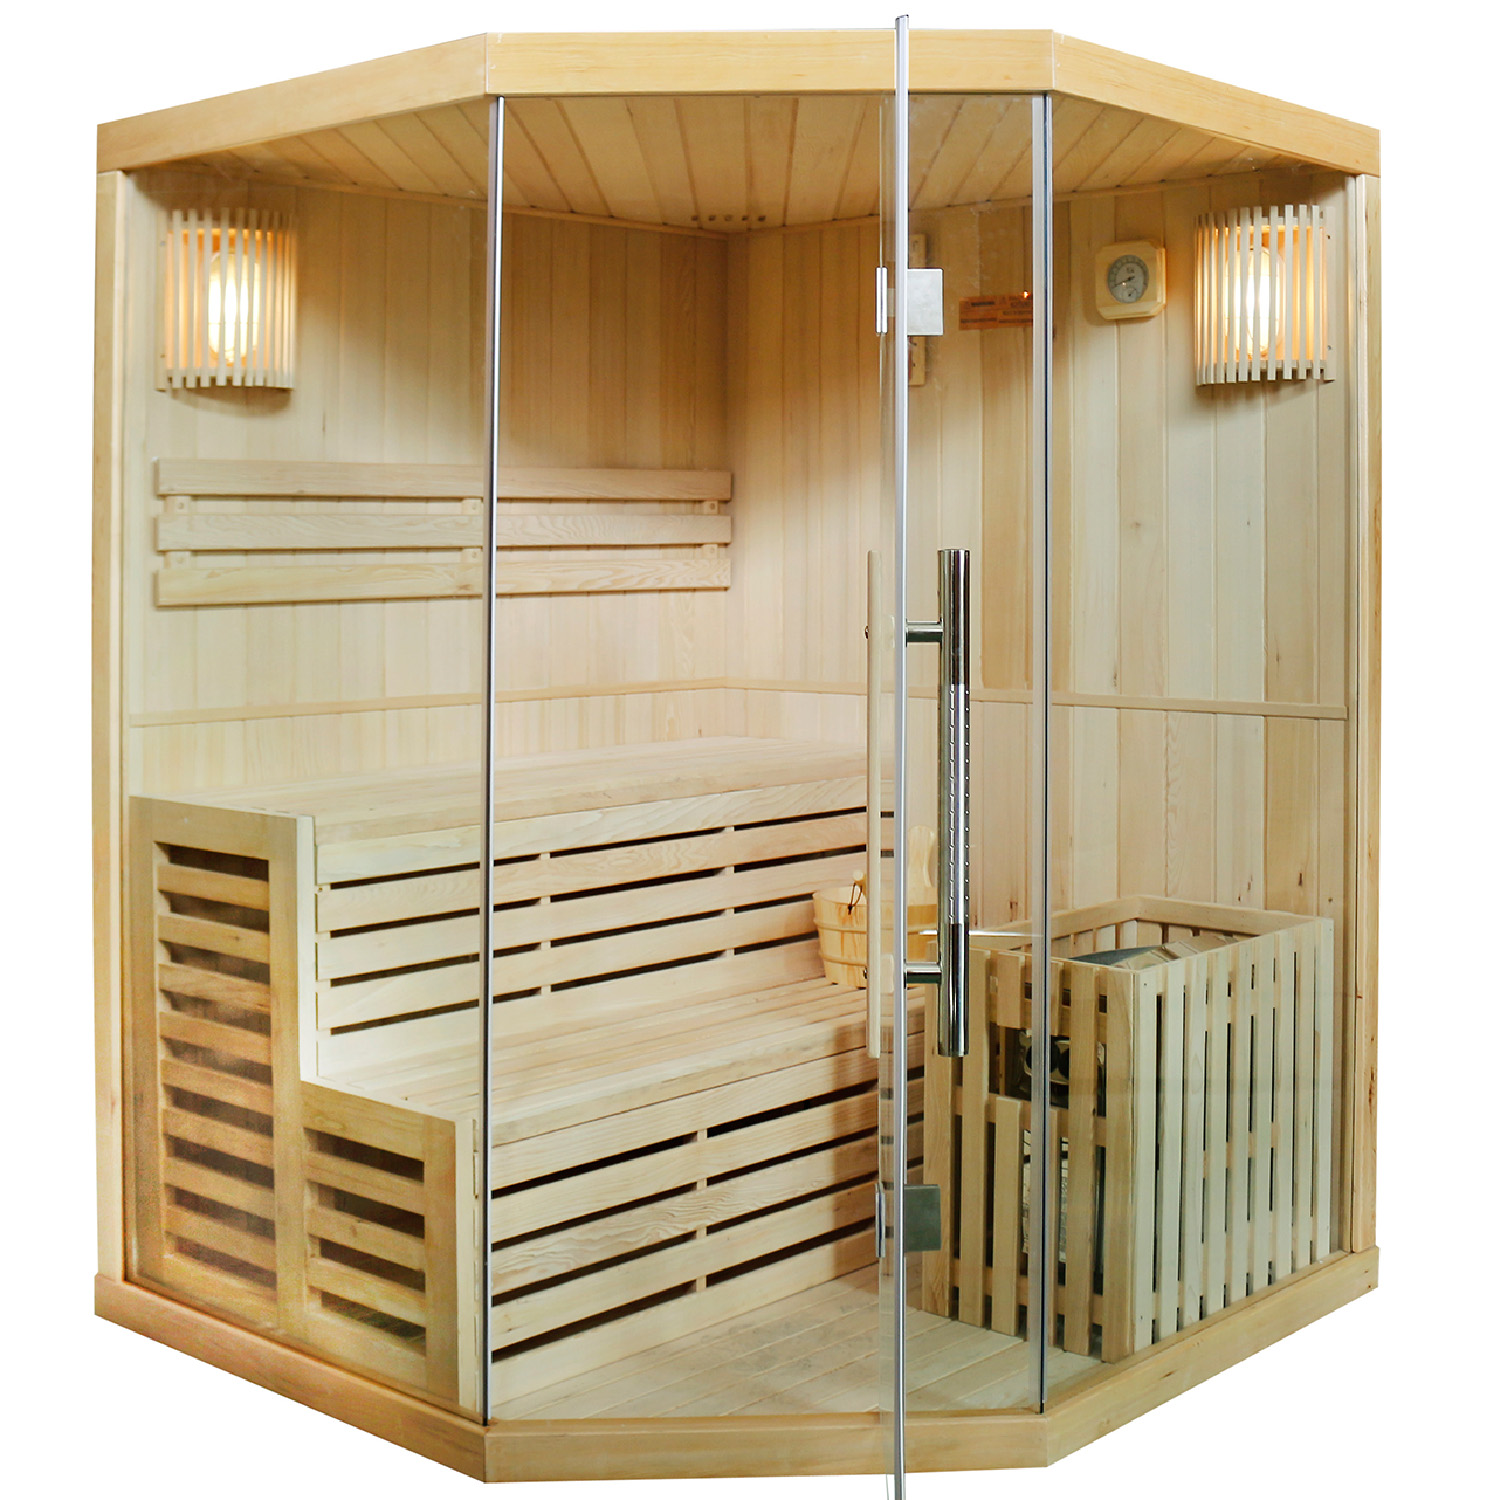 saunakabine sauna ecksauna traditionell harvia saunaofen artsauna neu ebay. Black Bedroom Furniture Sets. Home Design Ideas